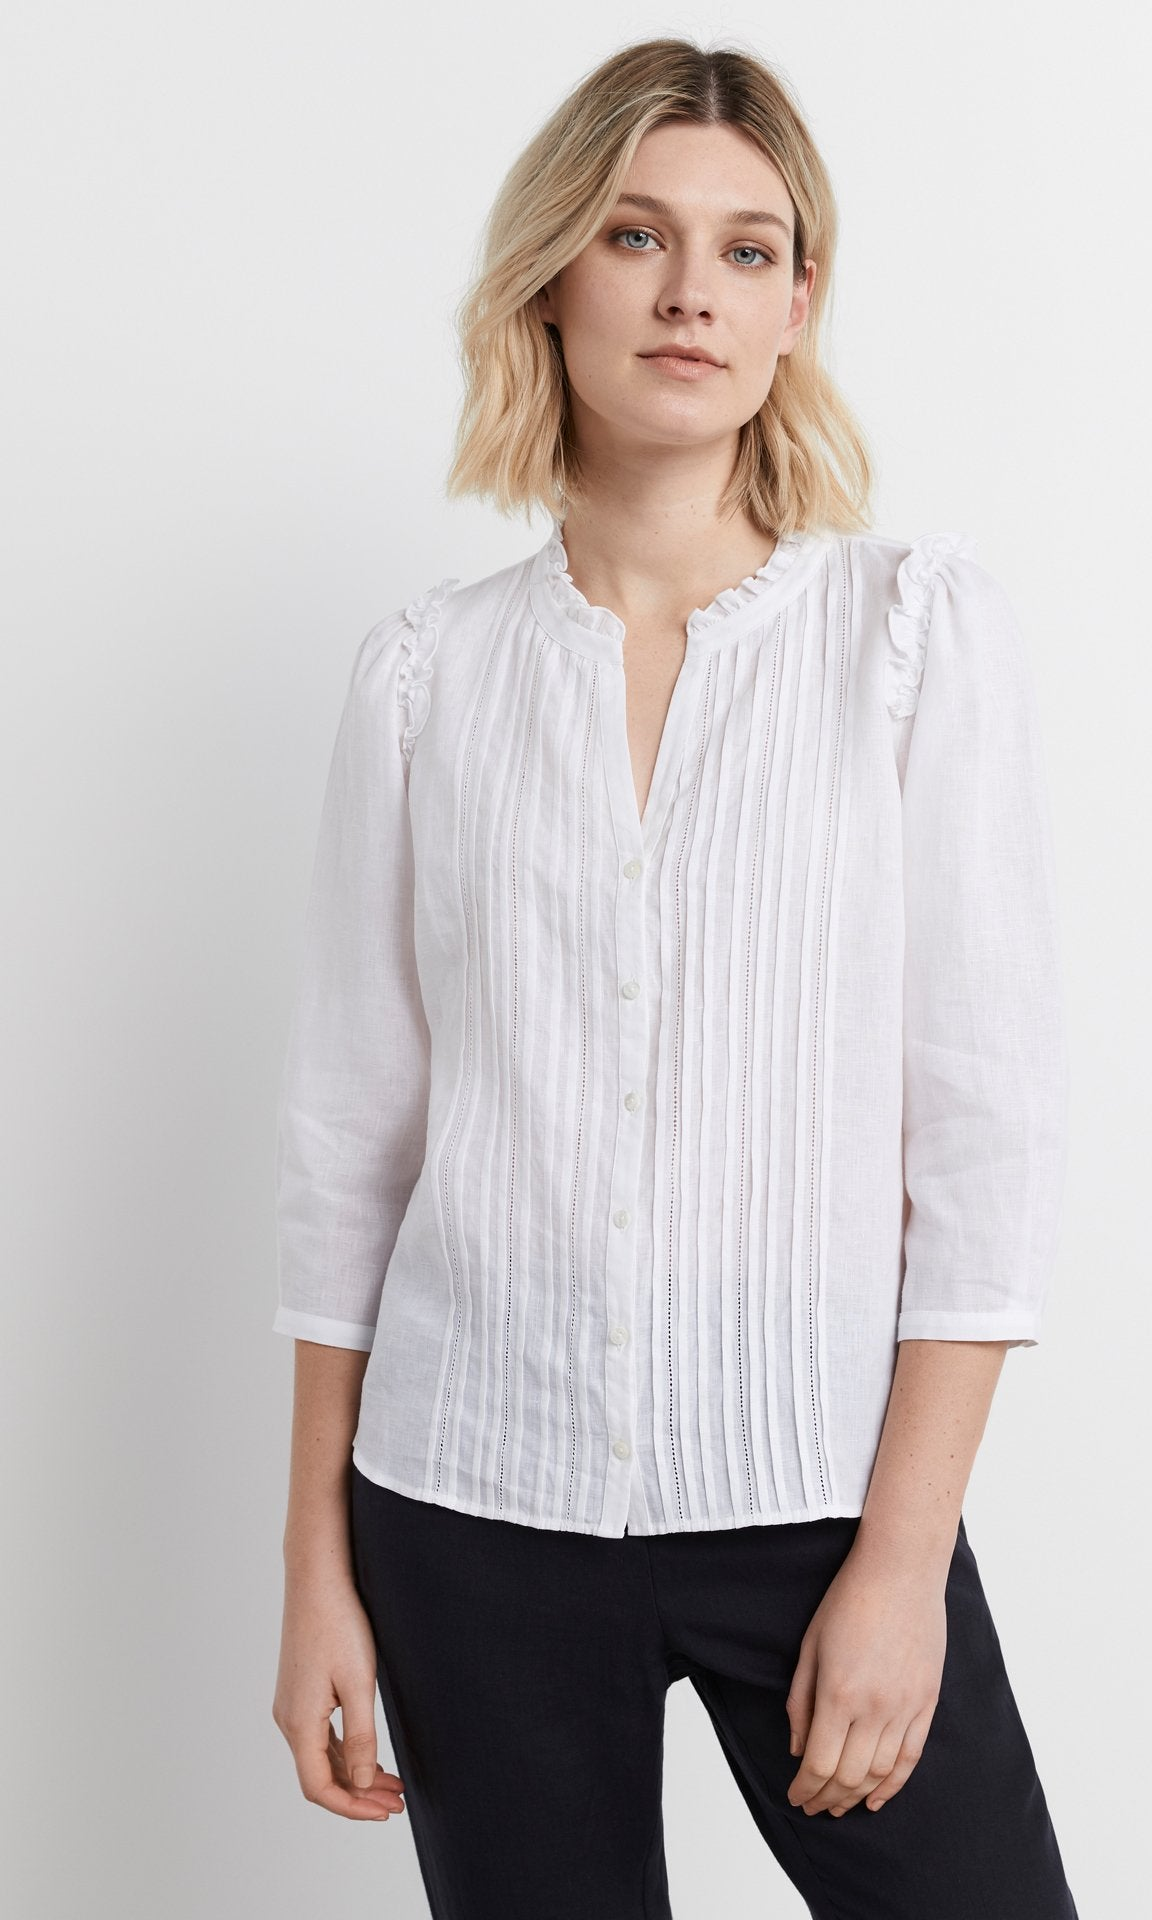 Rocca 3/4 Sleeve Blouse - White